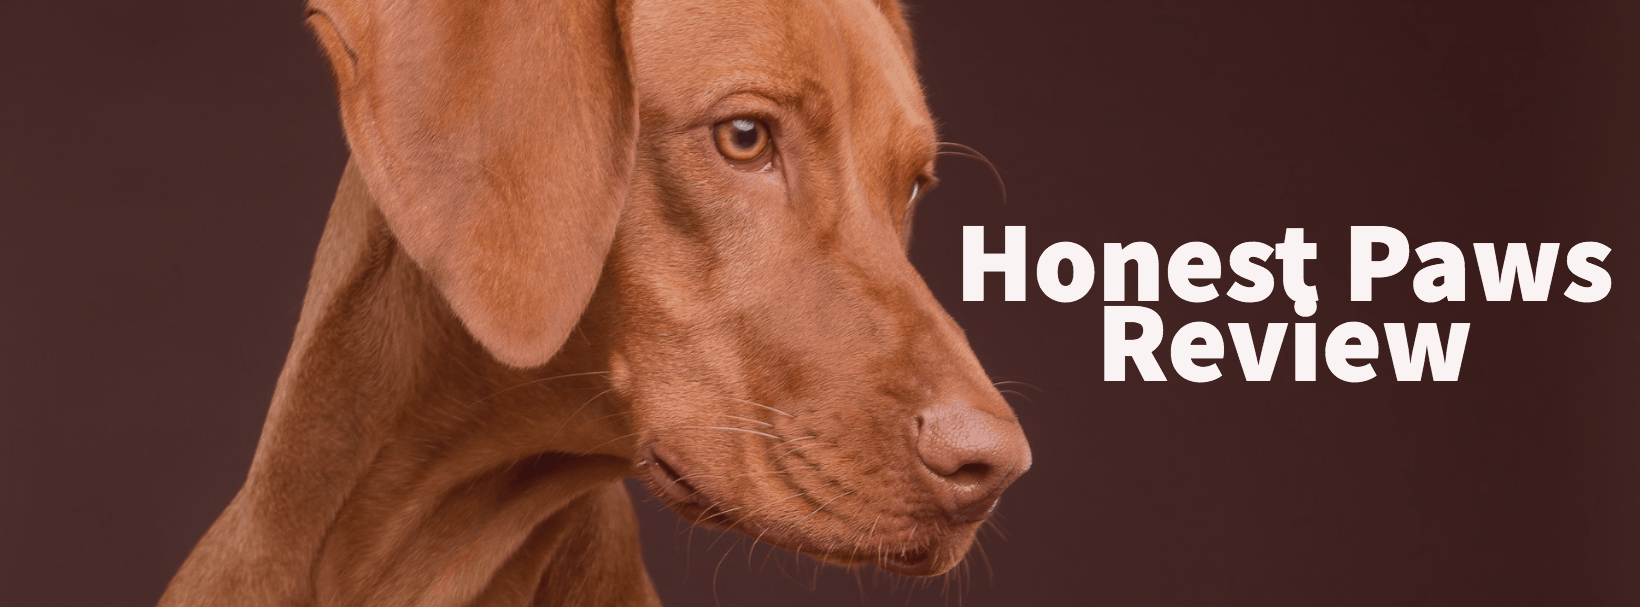 Honest Paws Review & Discount Code – My Honest Online Dog